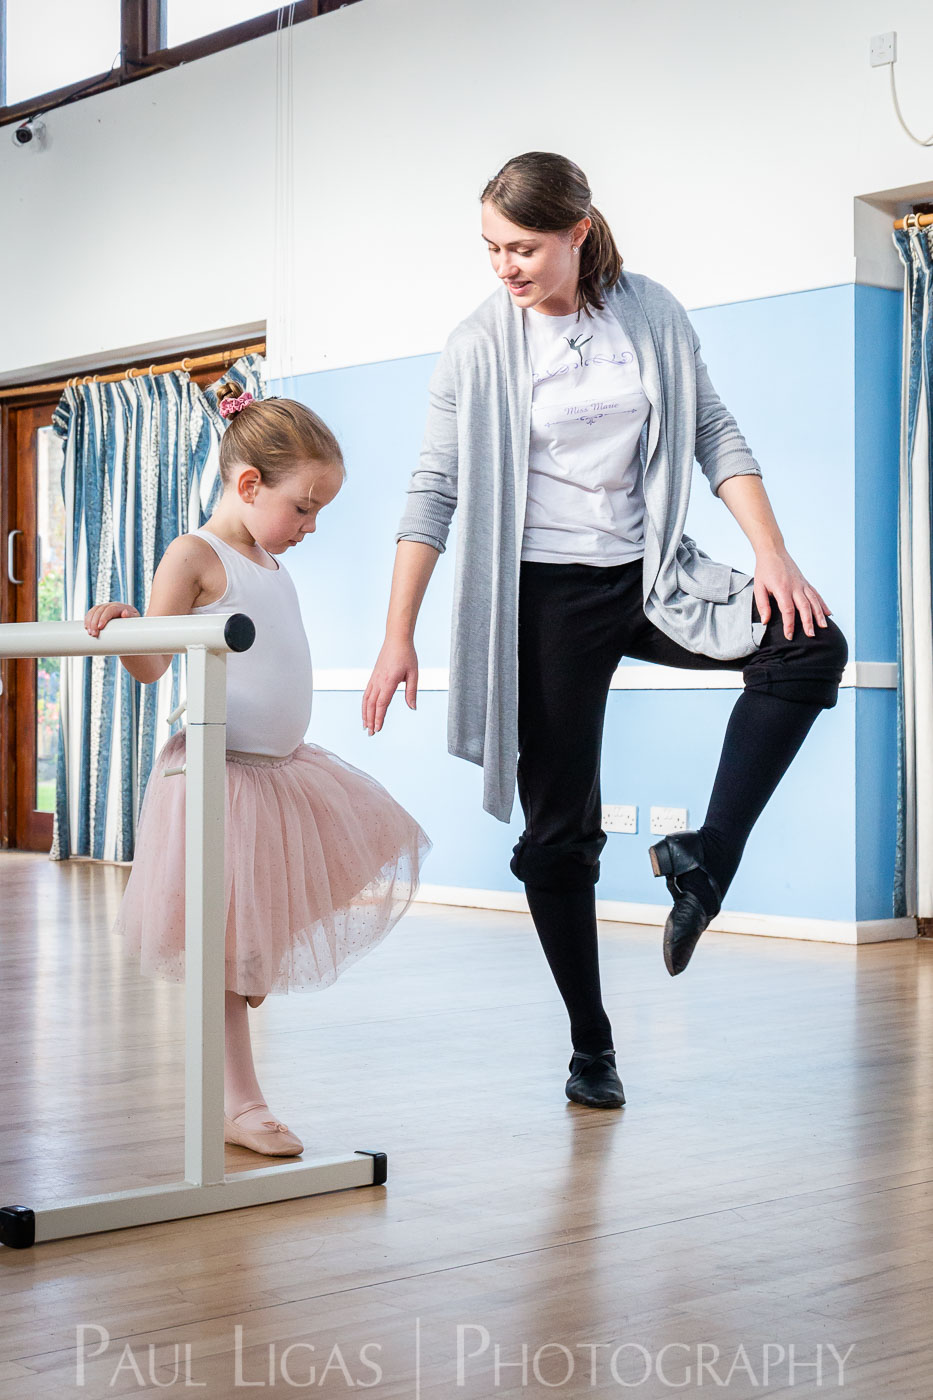 Miss Maries Diverse Dance School Bromyard event photographer Herefordshire photography arts 2754